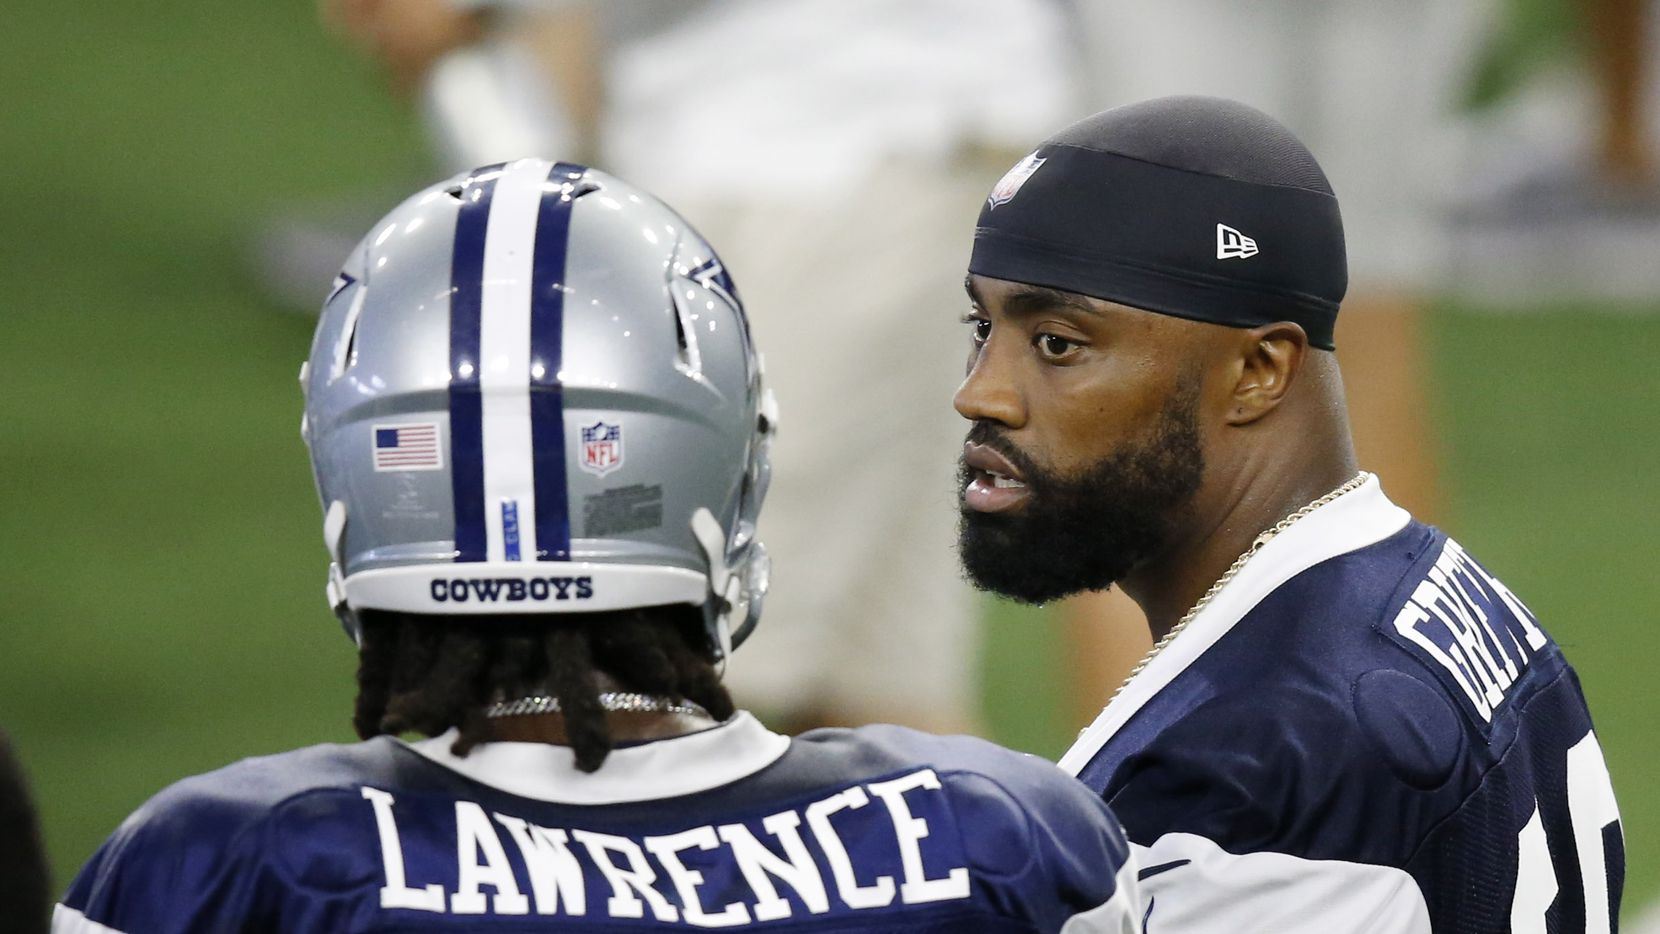 Dallas Cowboys defensive end Everson Griffen (96) talks with Dallas Cowboys defensive end DeMarcus Lawrence (90) during training camp at the Dallas Cowboys headquarters at The Star in Frisco, Texas on Monday, August 17, 2020.